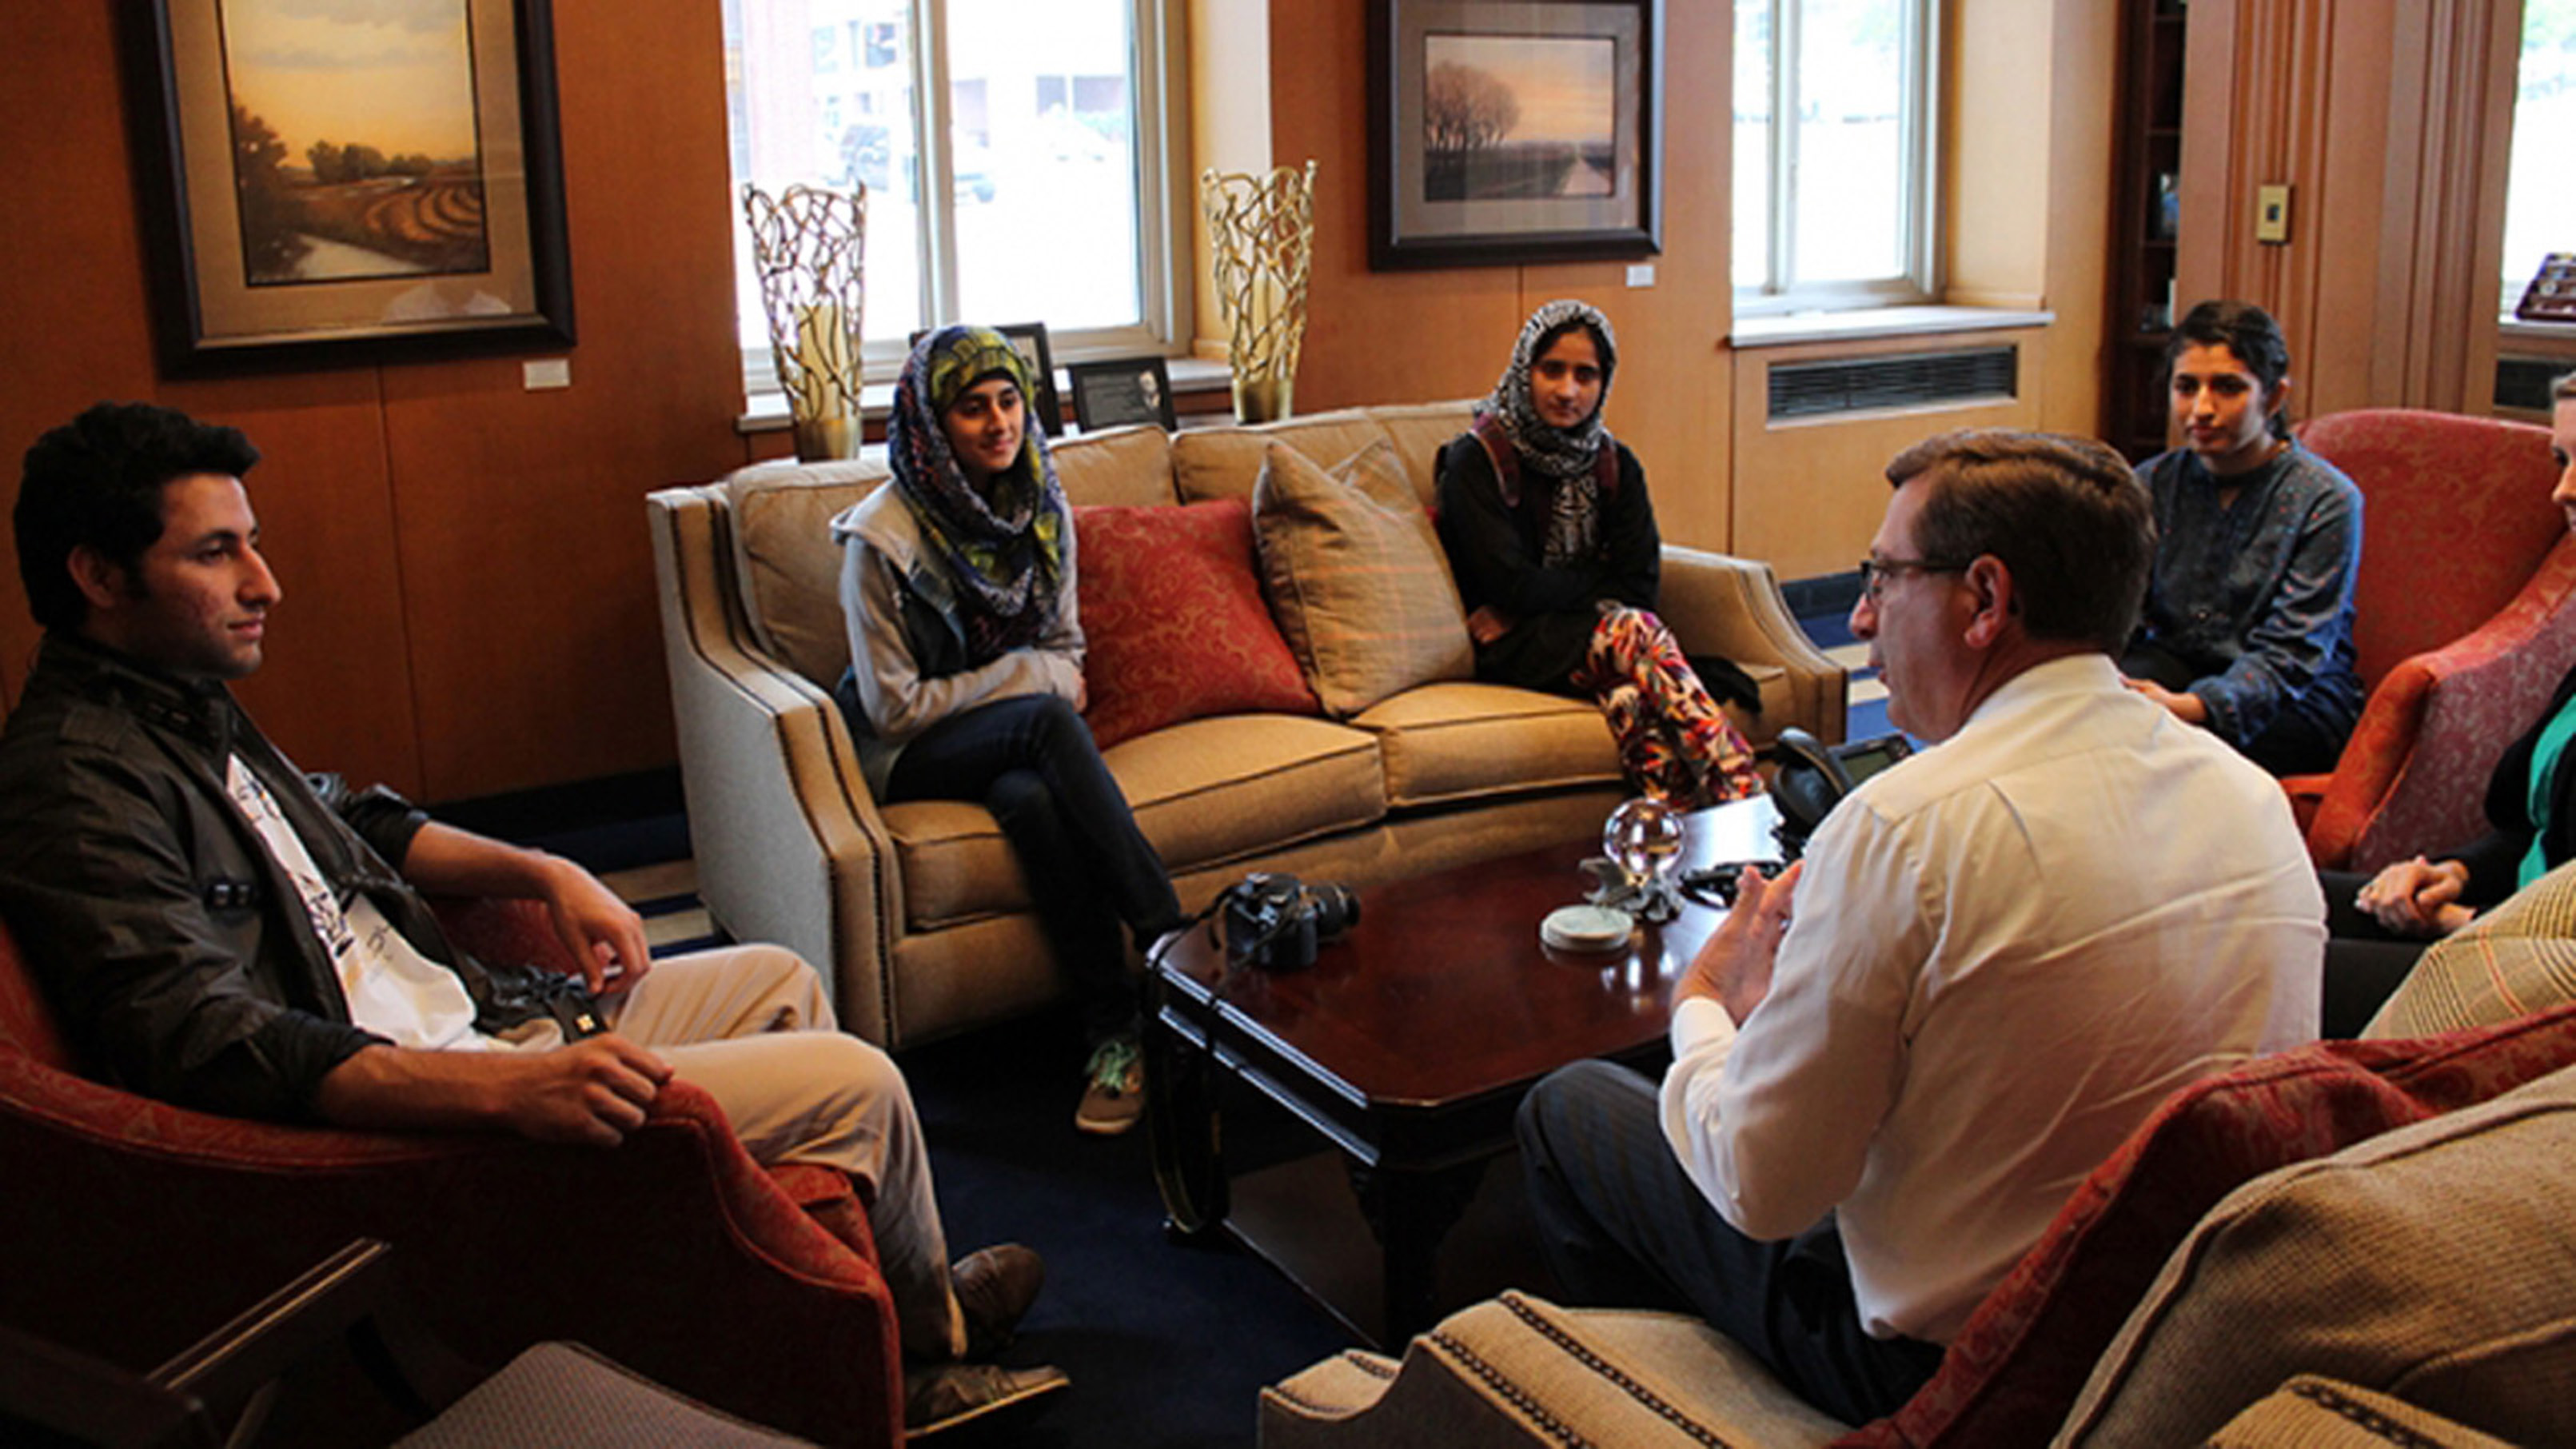 Ubaidullah, Ayesha Tariq, Bushra Malik and Hamna Tariq with Mayor Huether